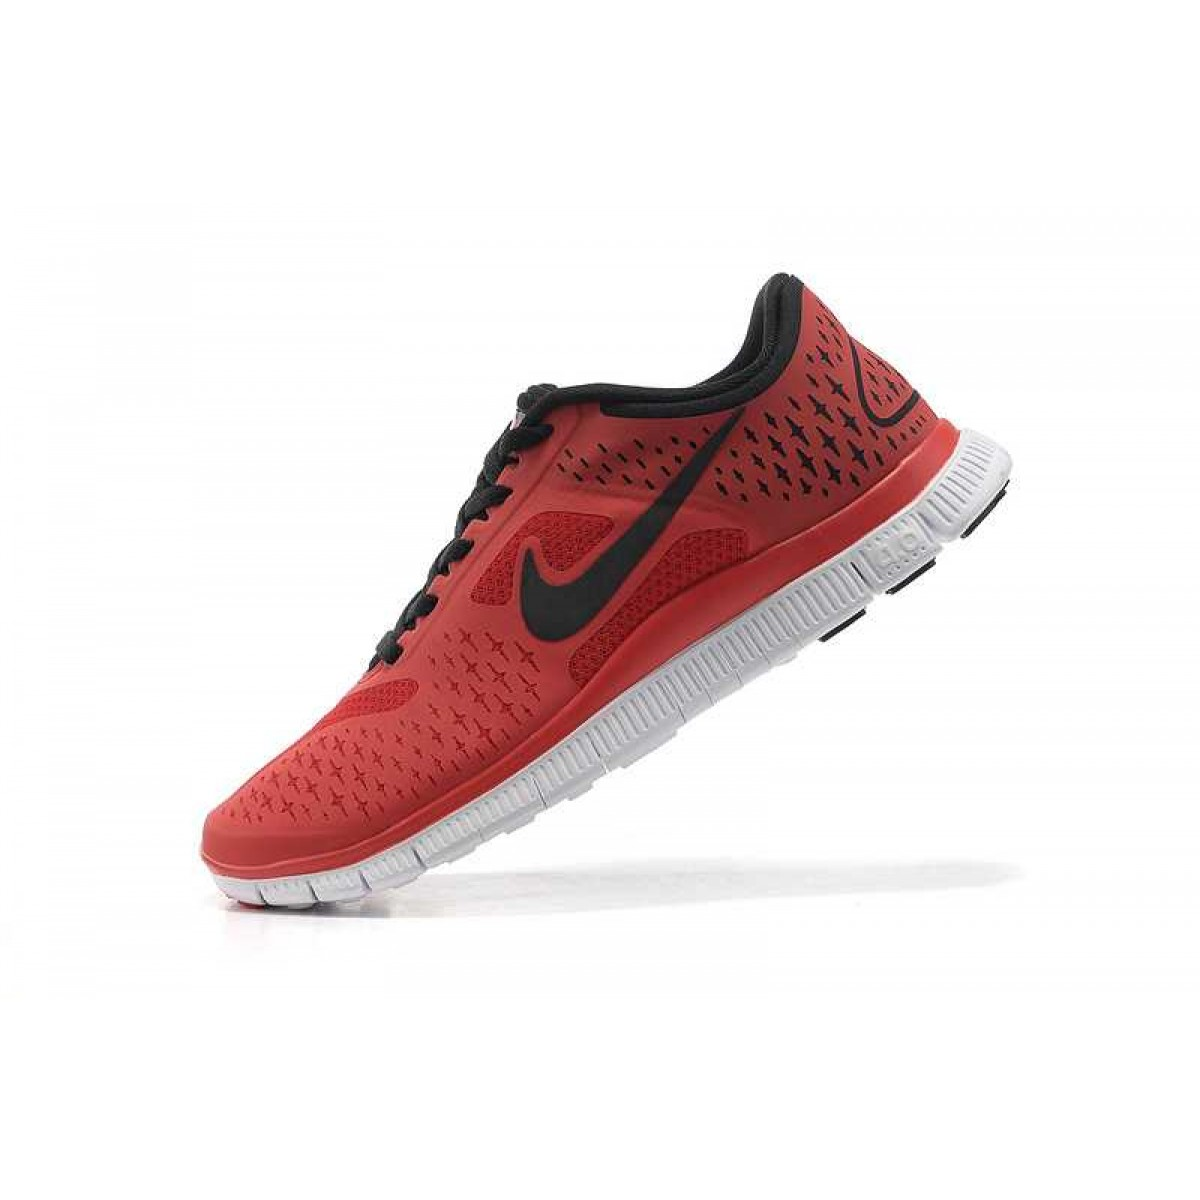 free shipping d4b0c d882a Homme Nike Free 4.0 V2 Chaussures Rouge Noir,nike free nike 6.0,qualité  supérieure